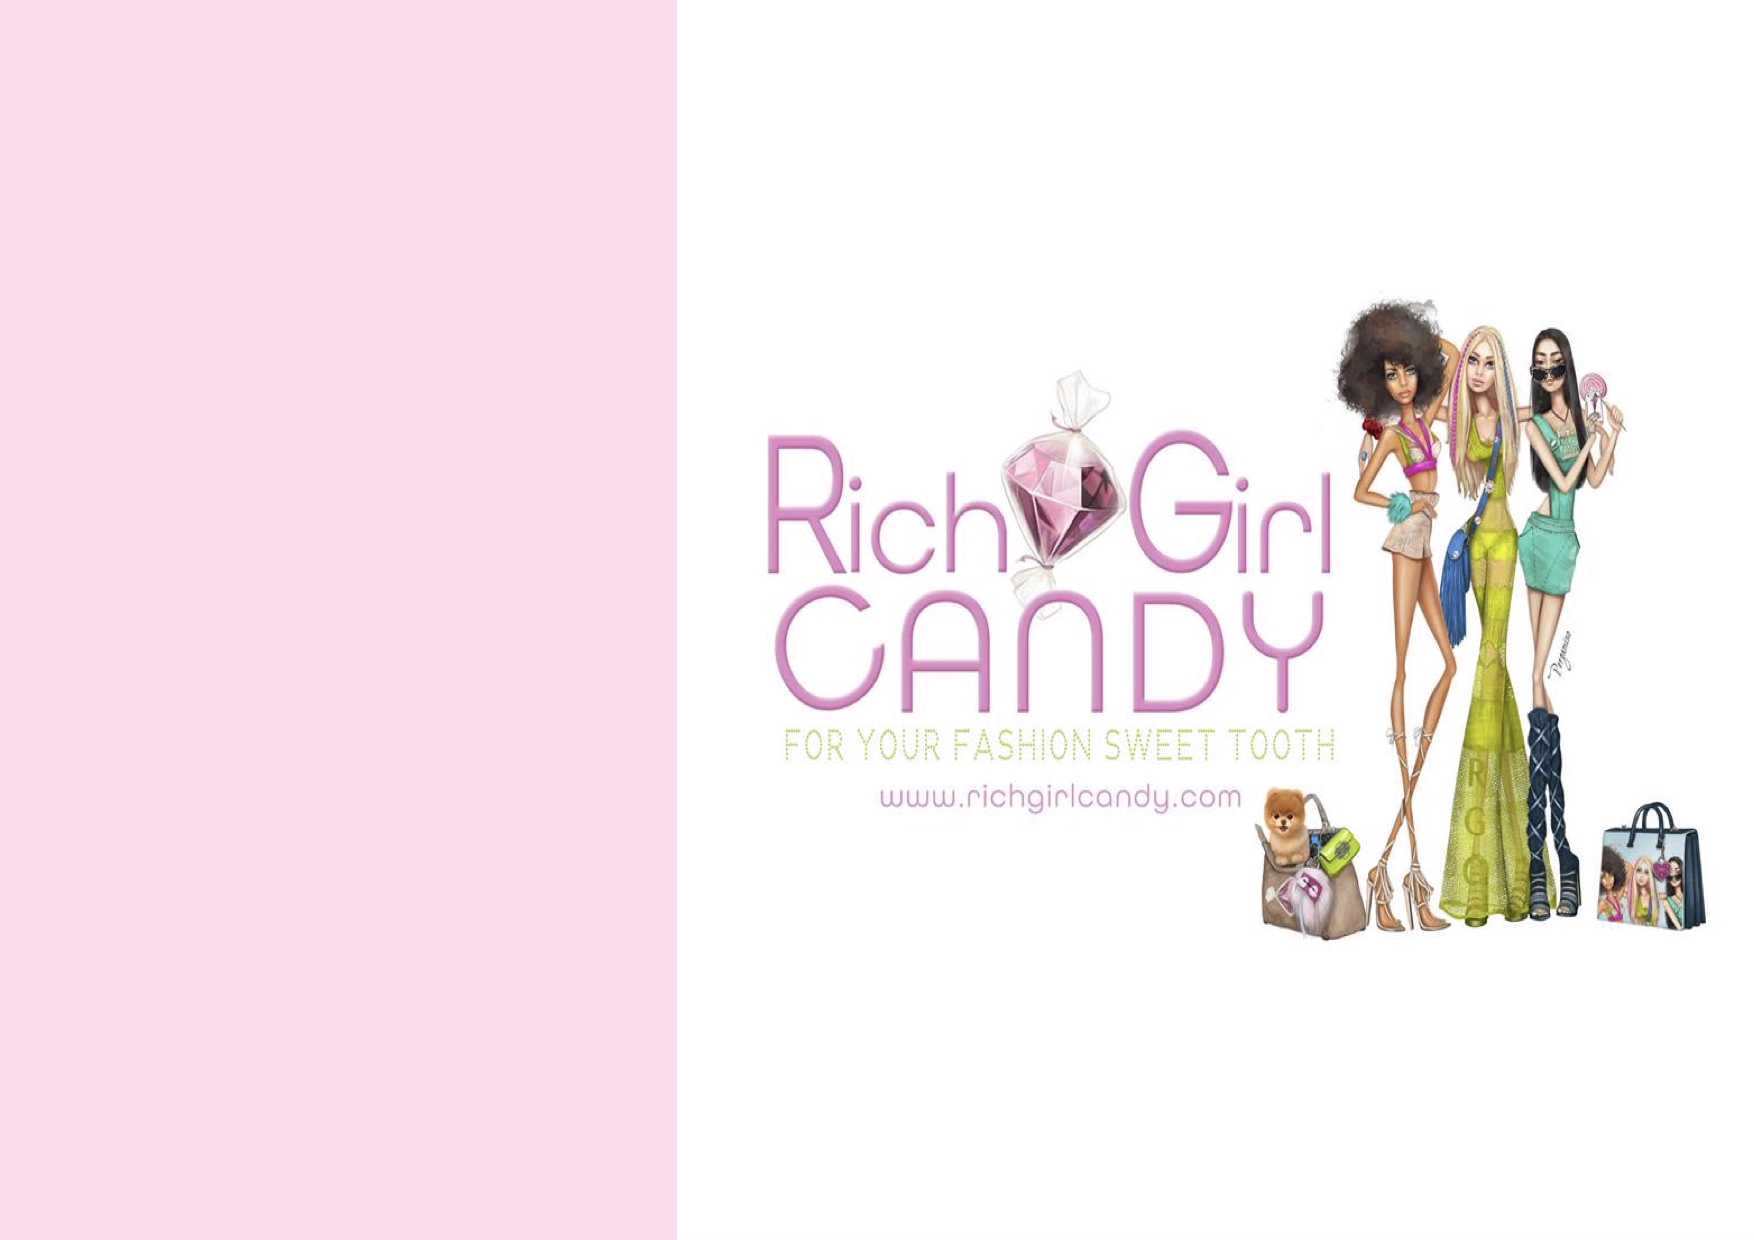 Rich Girl Candy Page 1.jpg